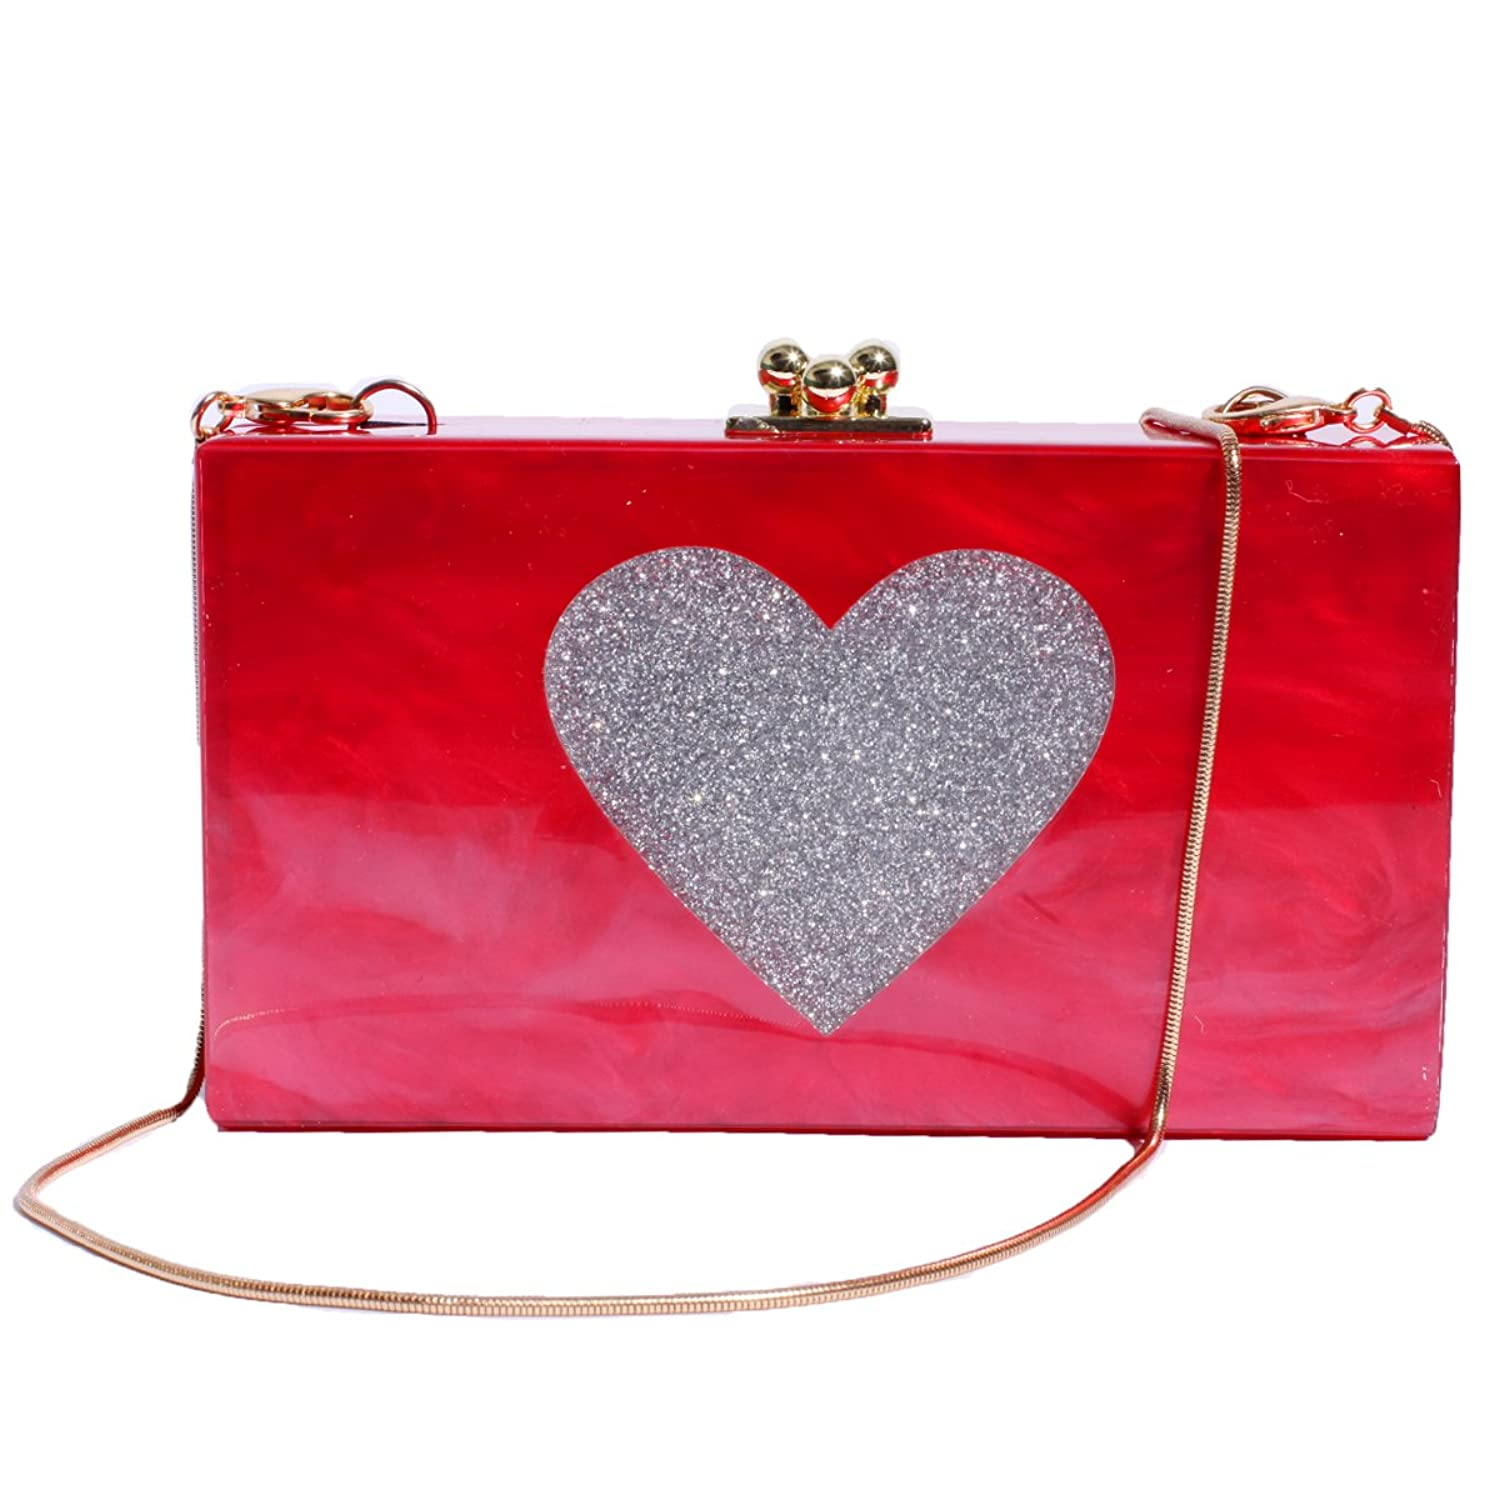 Zarapack Women's Glitter Heart Hard Case Chain Shoulder Bag Clutch Love Gift Purse